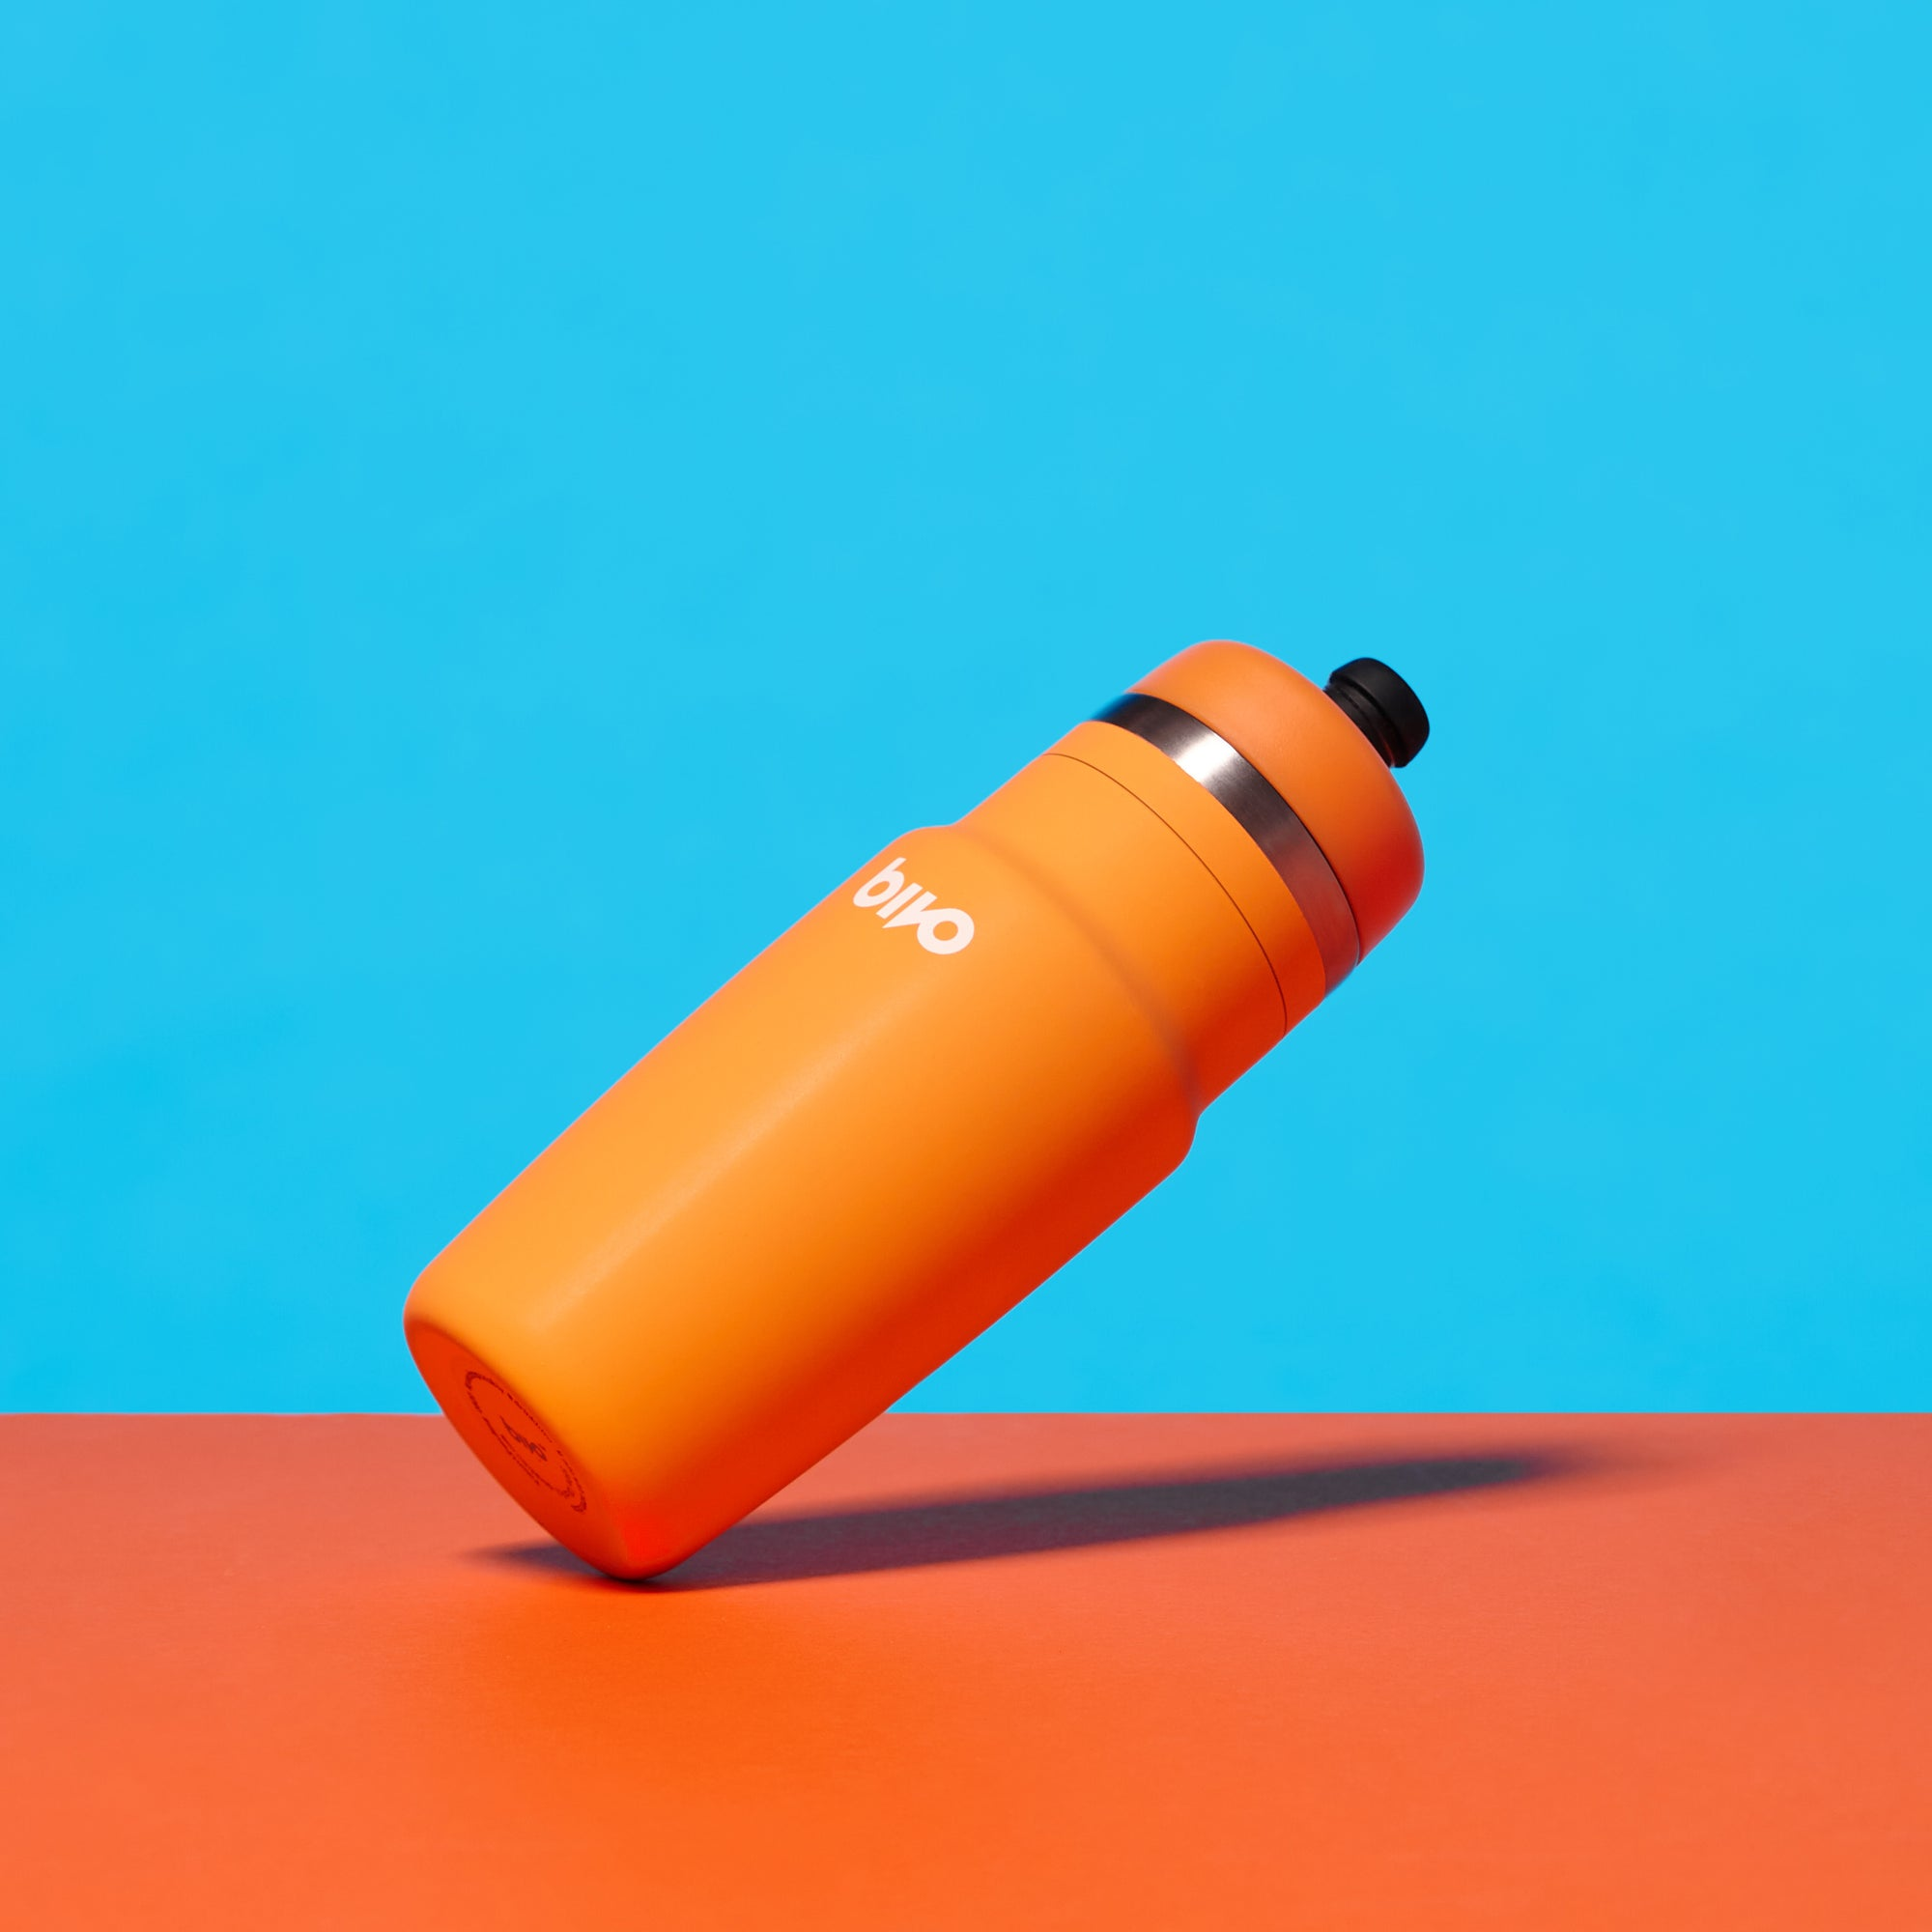 Bivo One stainless steel performance bike water bottle with a flow-rate fit for astronauts. Built so you never have to experience the taste of mold or plastic again. Clean taste. High flow. Dishwasher safe.